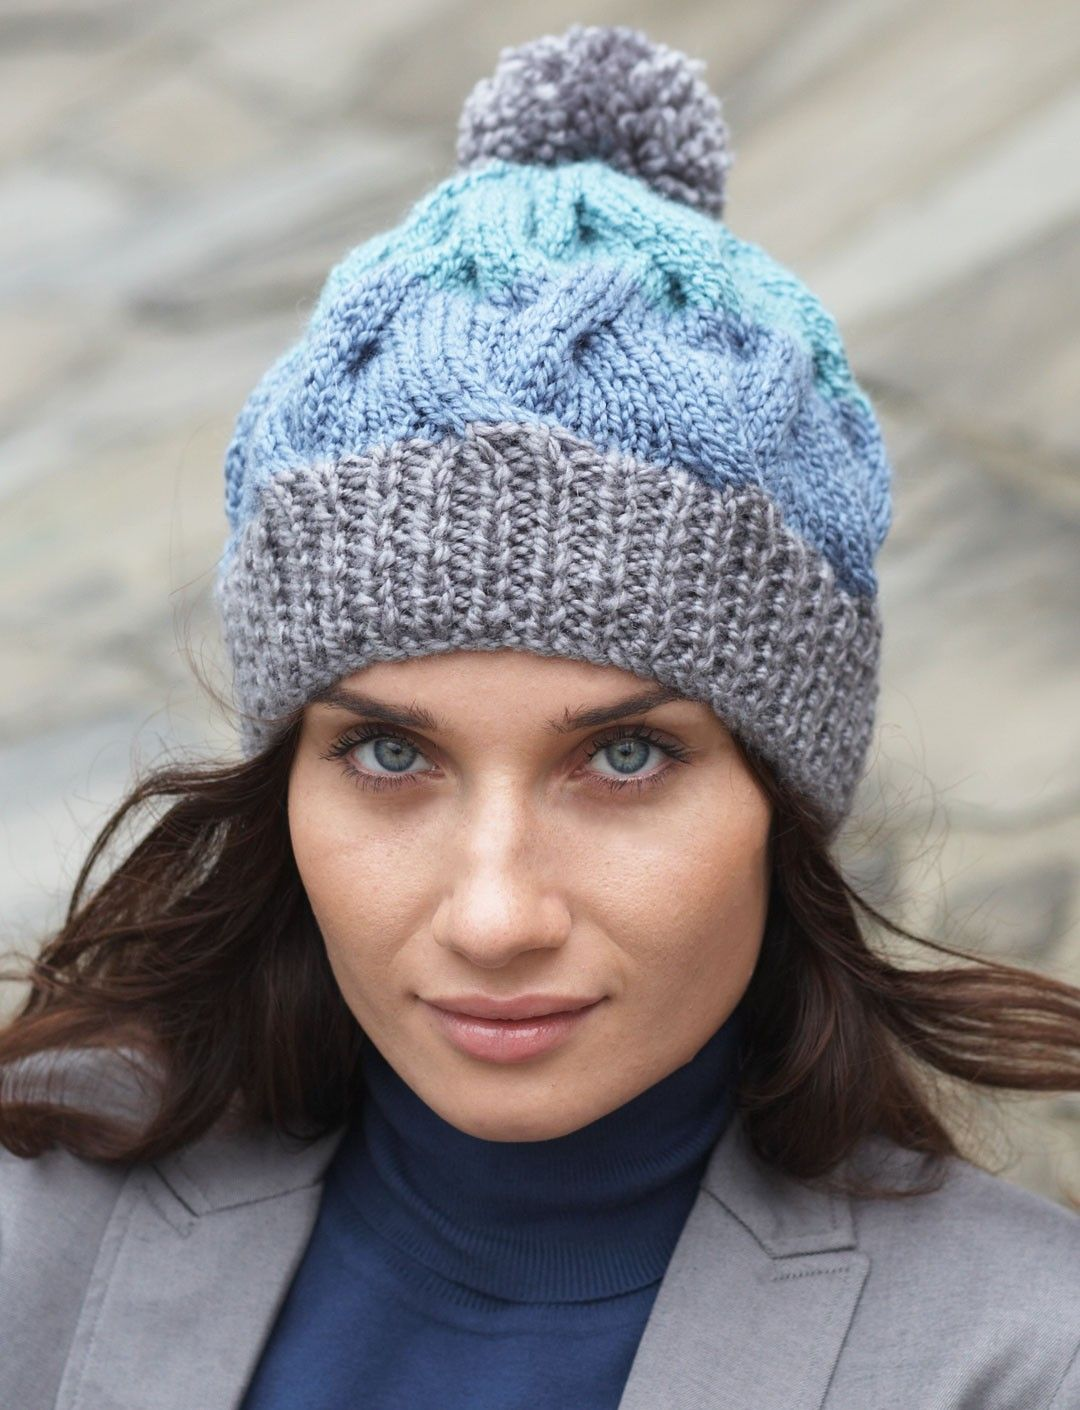 Yarnspirations.com - Patons Striped Cable Hat - Patterns ...